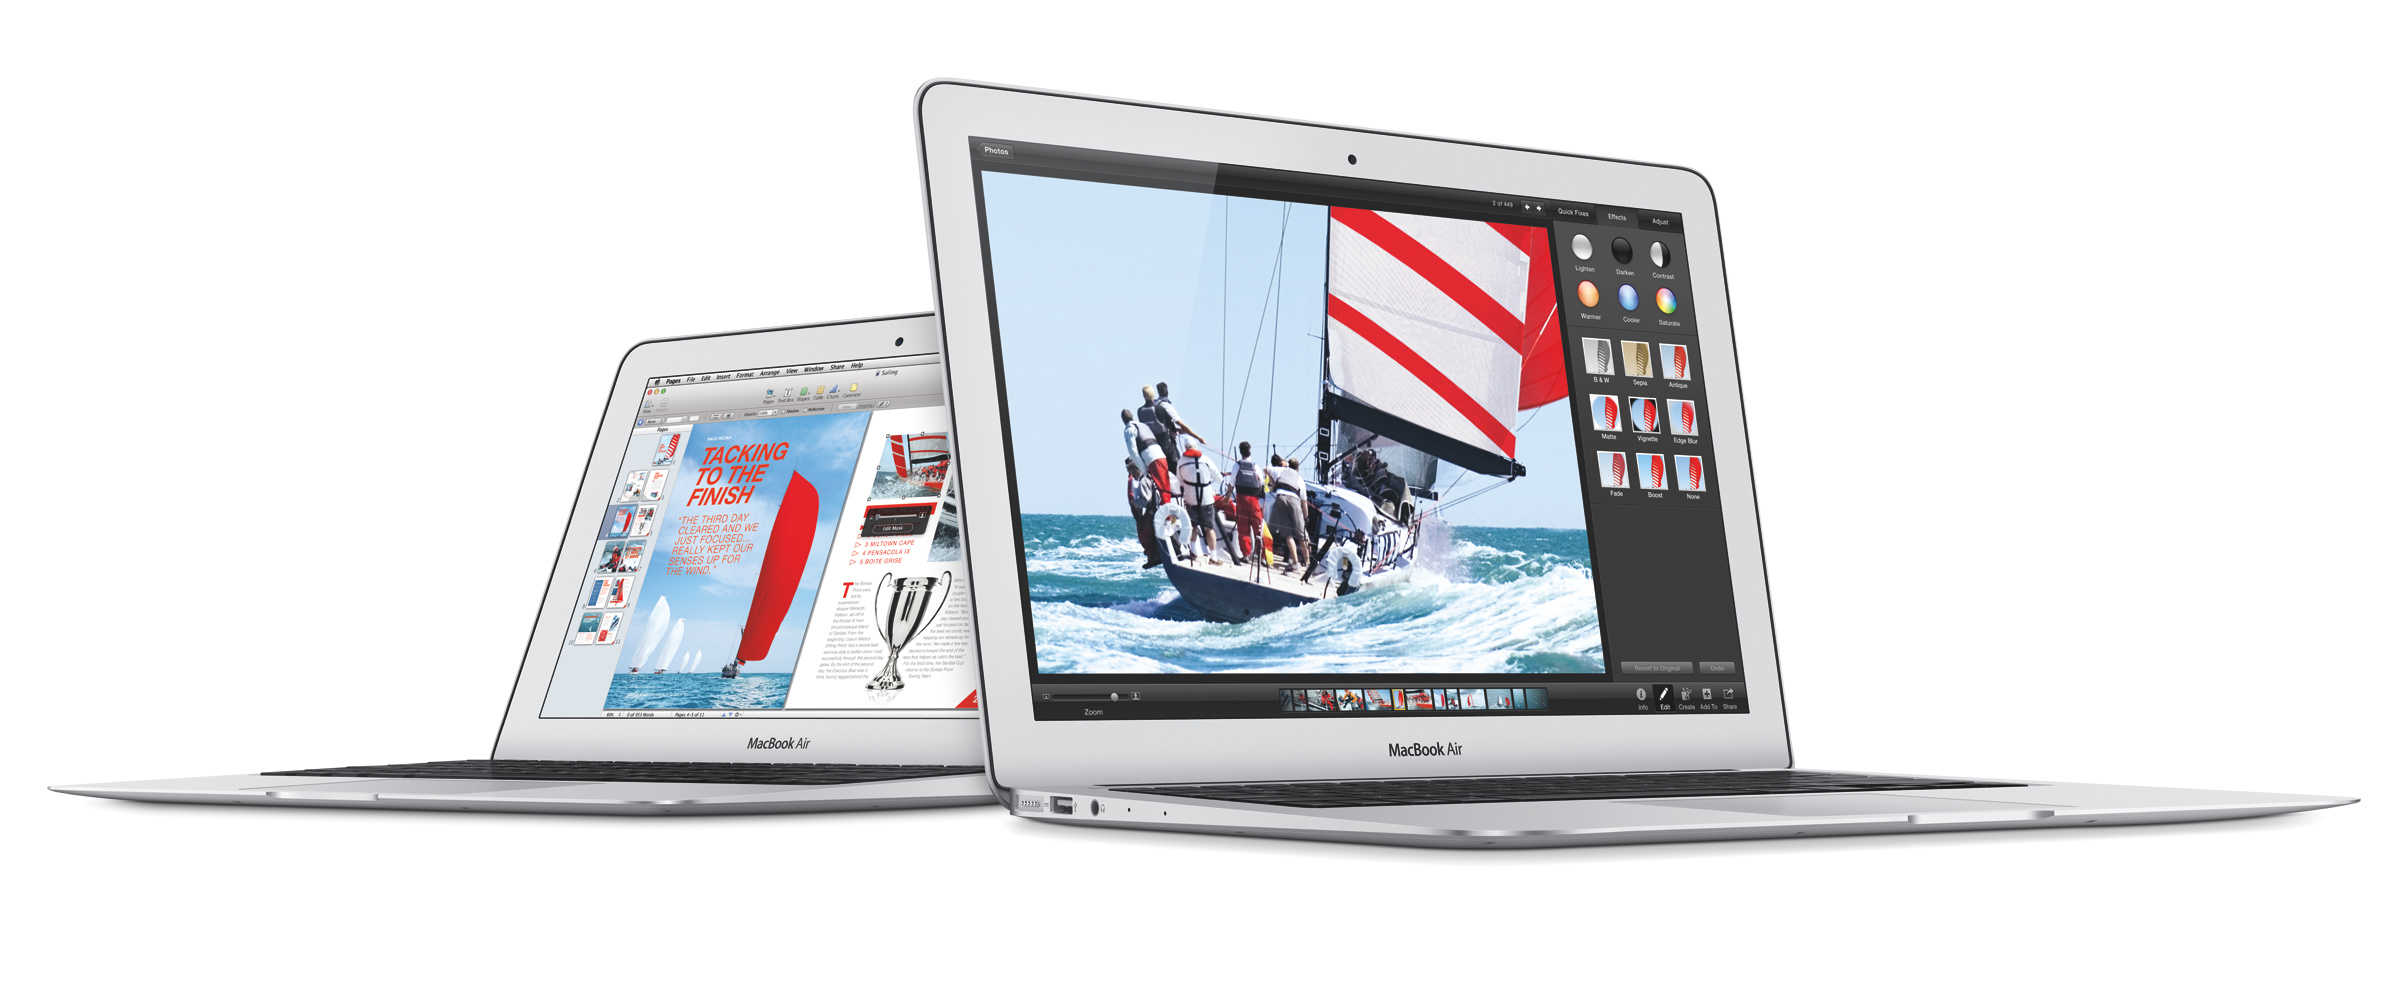 MacBook Air in 11-inch and 13-inch sizes.